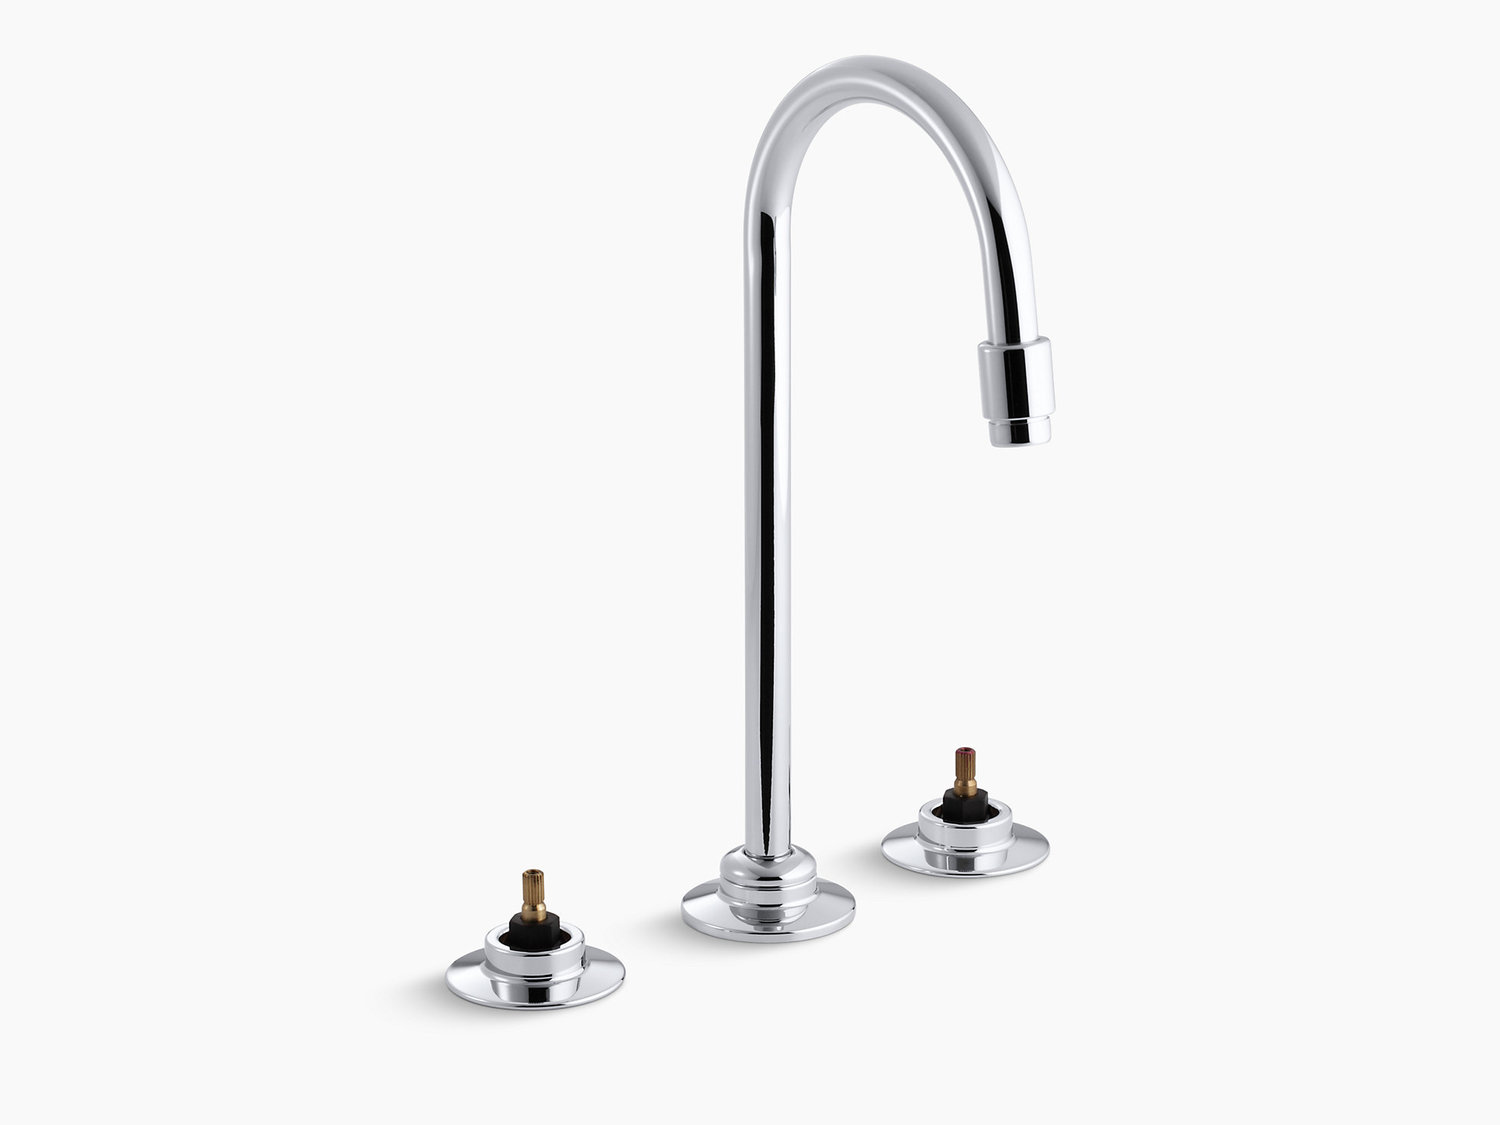 Kohler K7304kcp Studio41 Polished Chrome Widespread Commercial Bathroom Sink Faucet With Flexible Connections And Gooseneck Spout Requires Handles